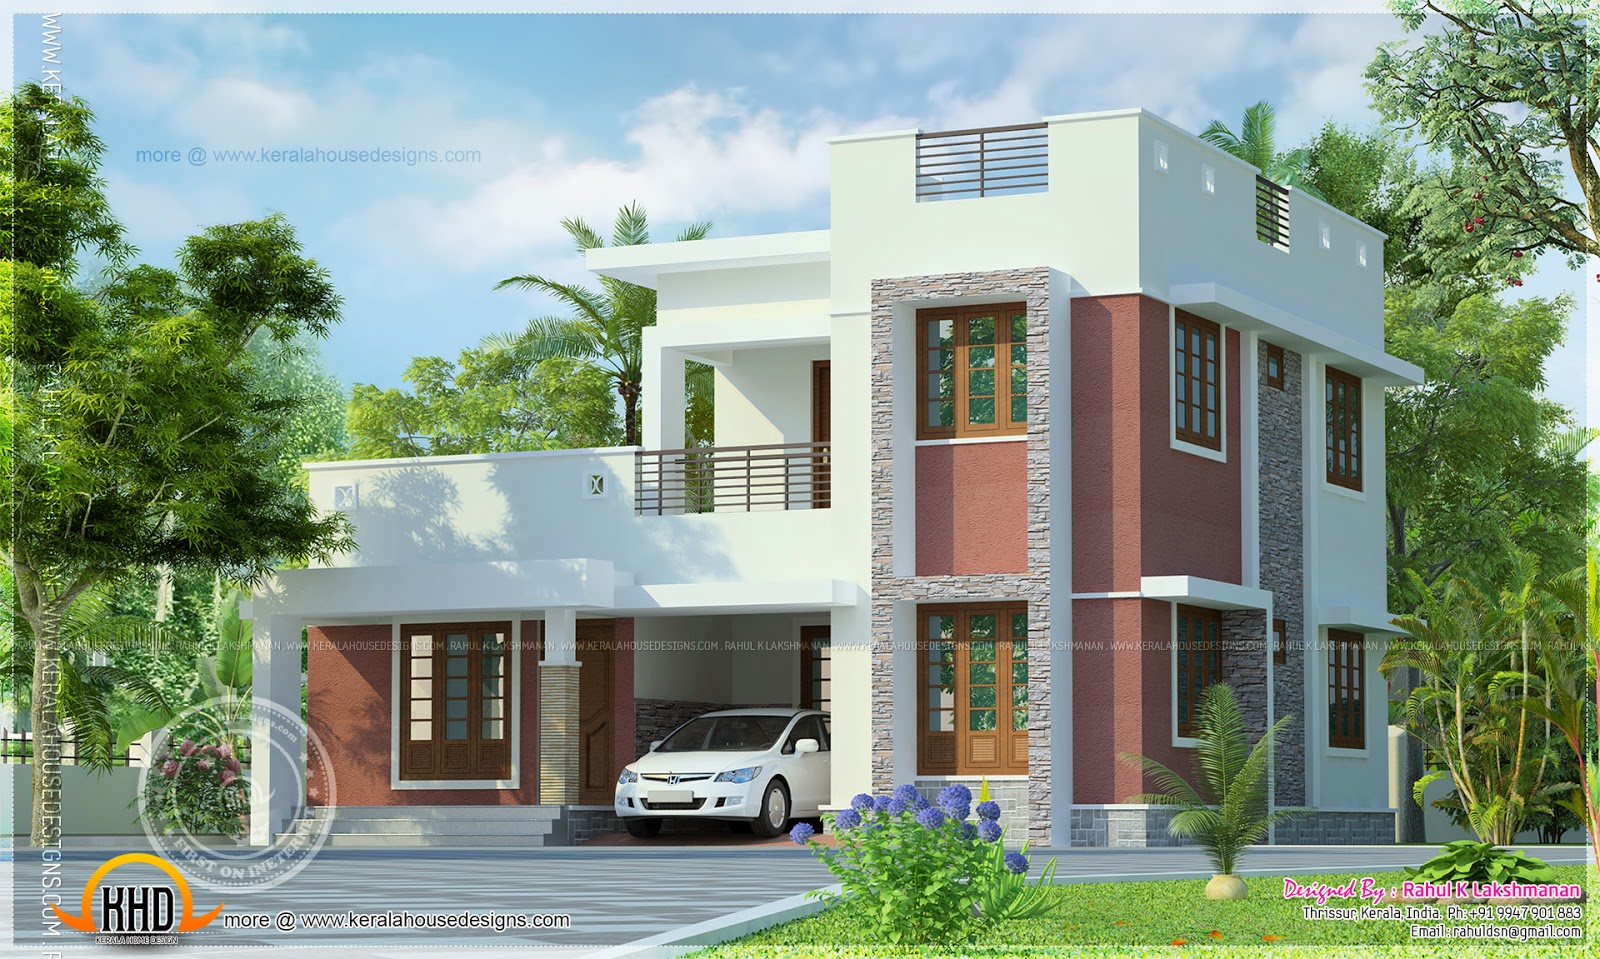 Simple flat roof house exterior kerala home design and for Simple house exterior design